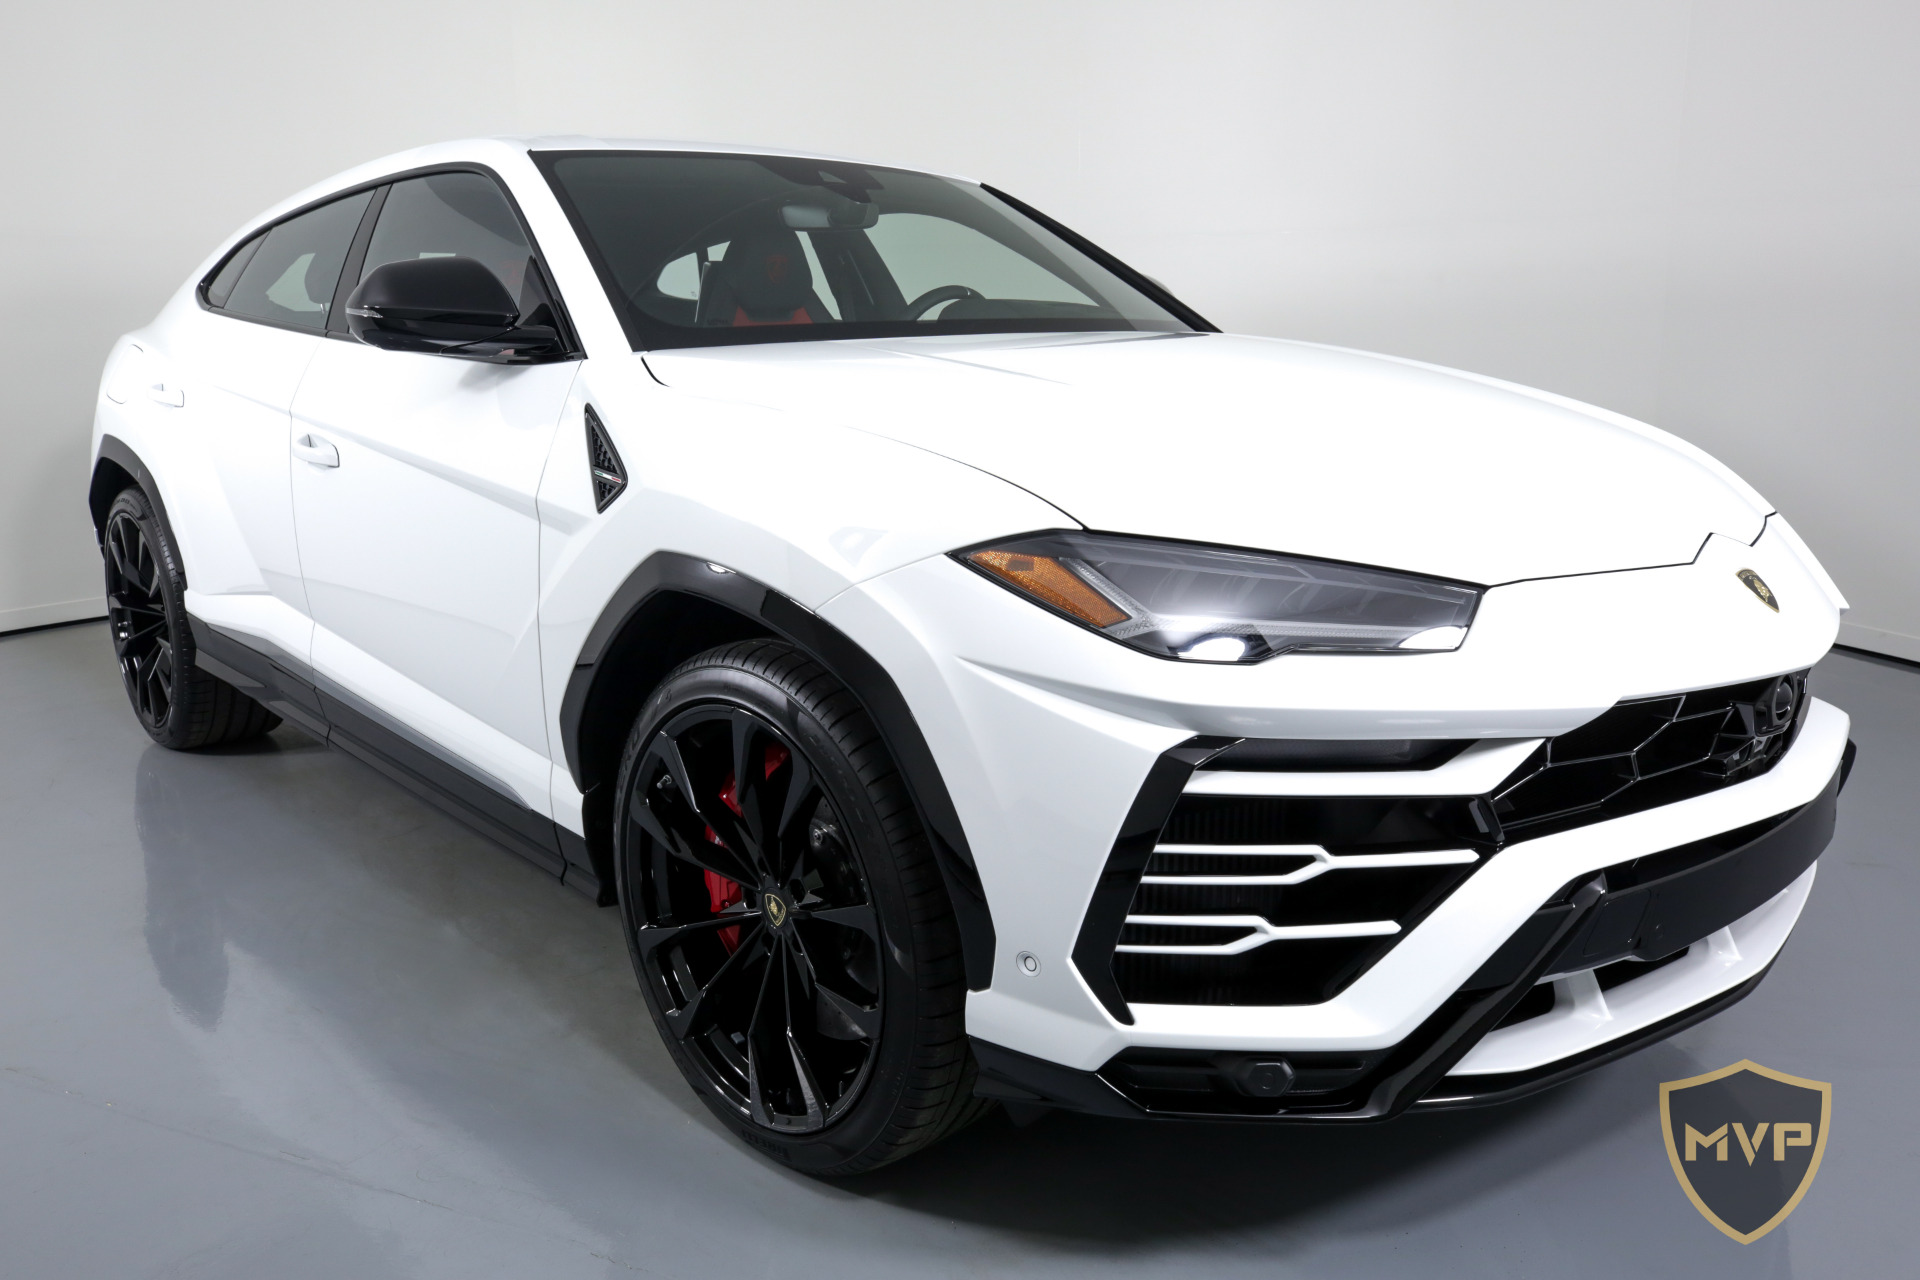 used 2020 lamborghini urus for sale 1 699 mvp atlanta stock a07331 used 2020 lamborghini urus for sale 1